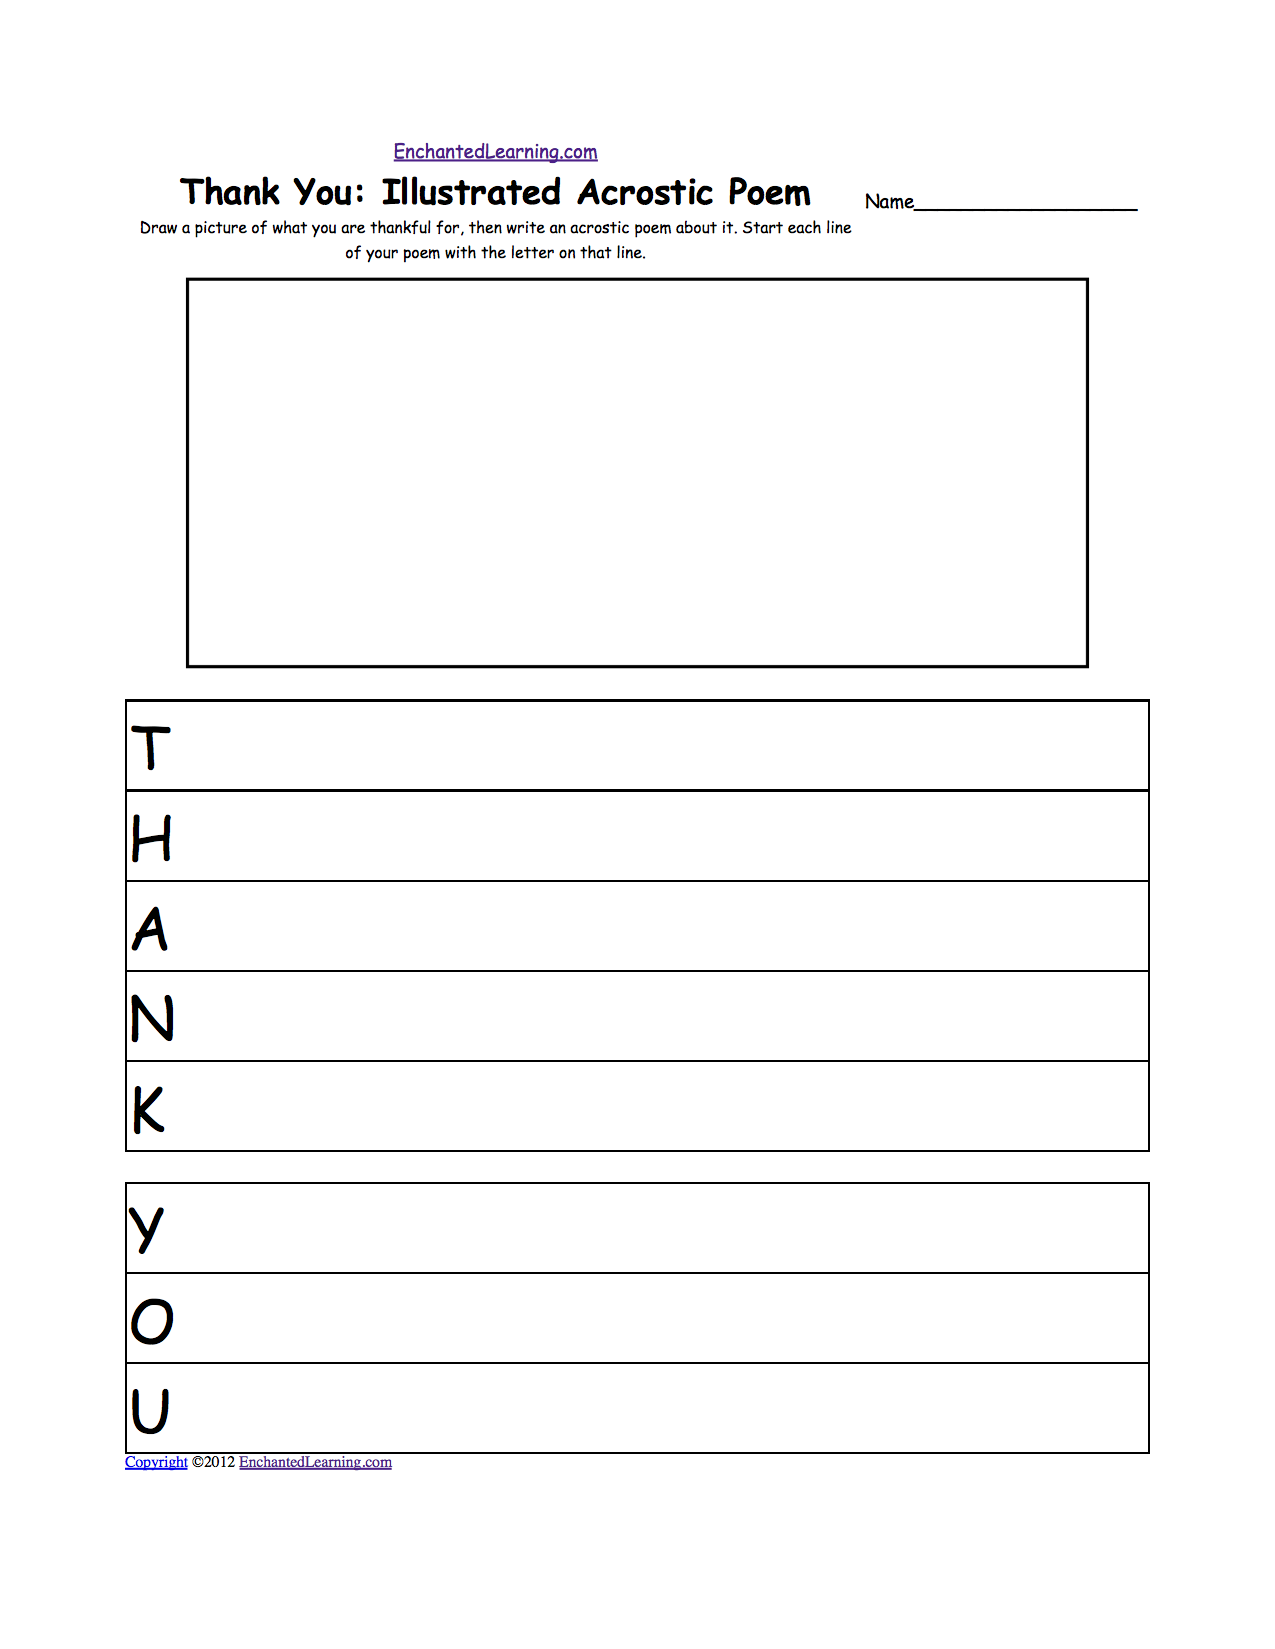 Thanksgiving Writing Worksheets  EnchantedlearningCom